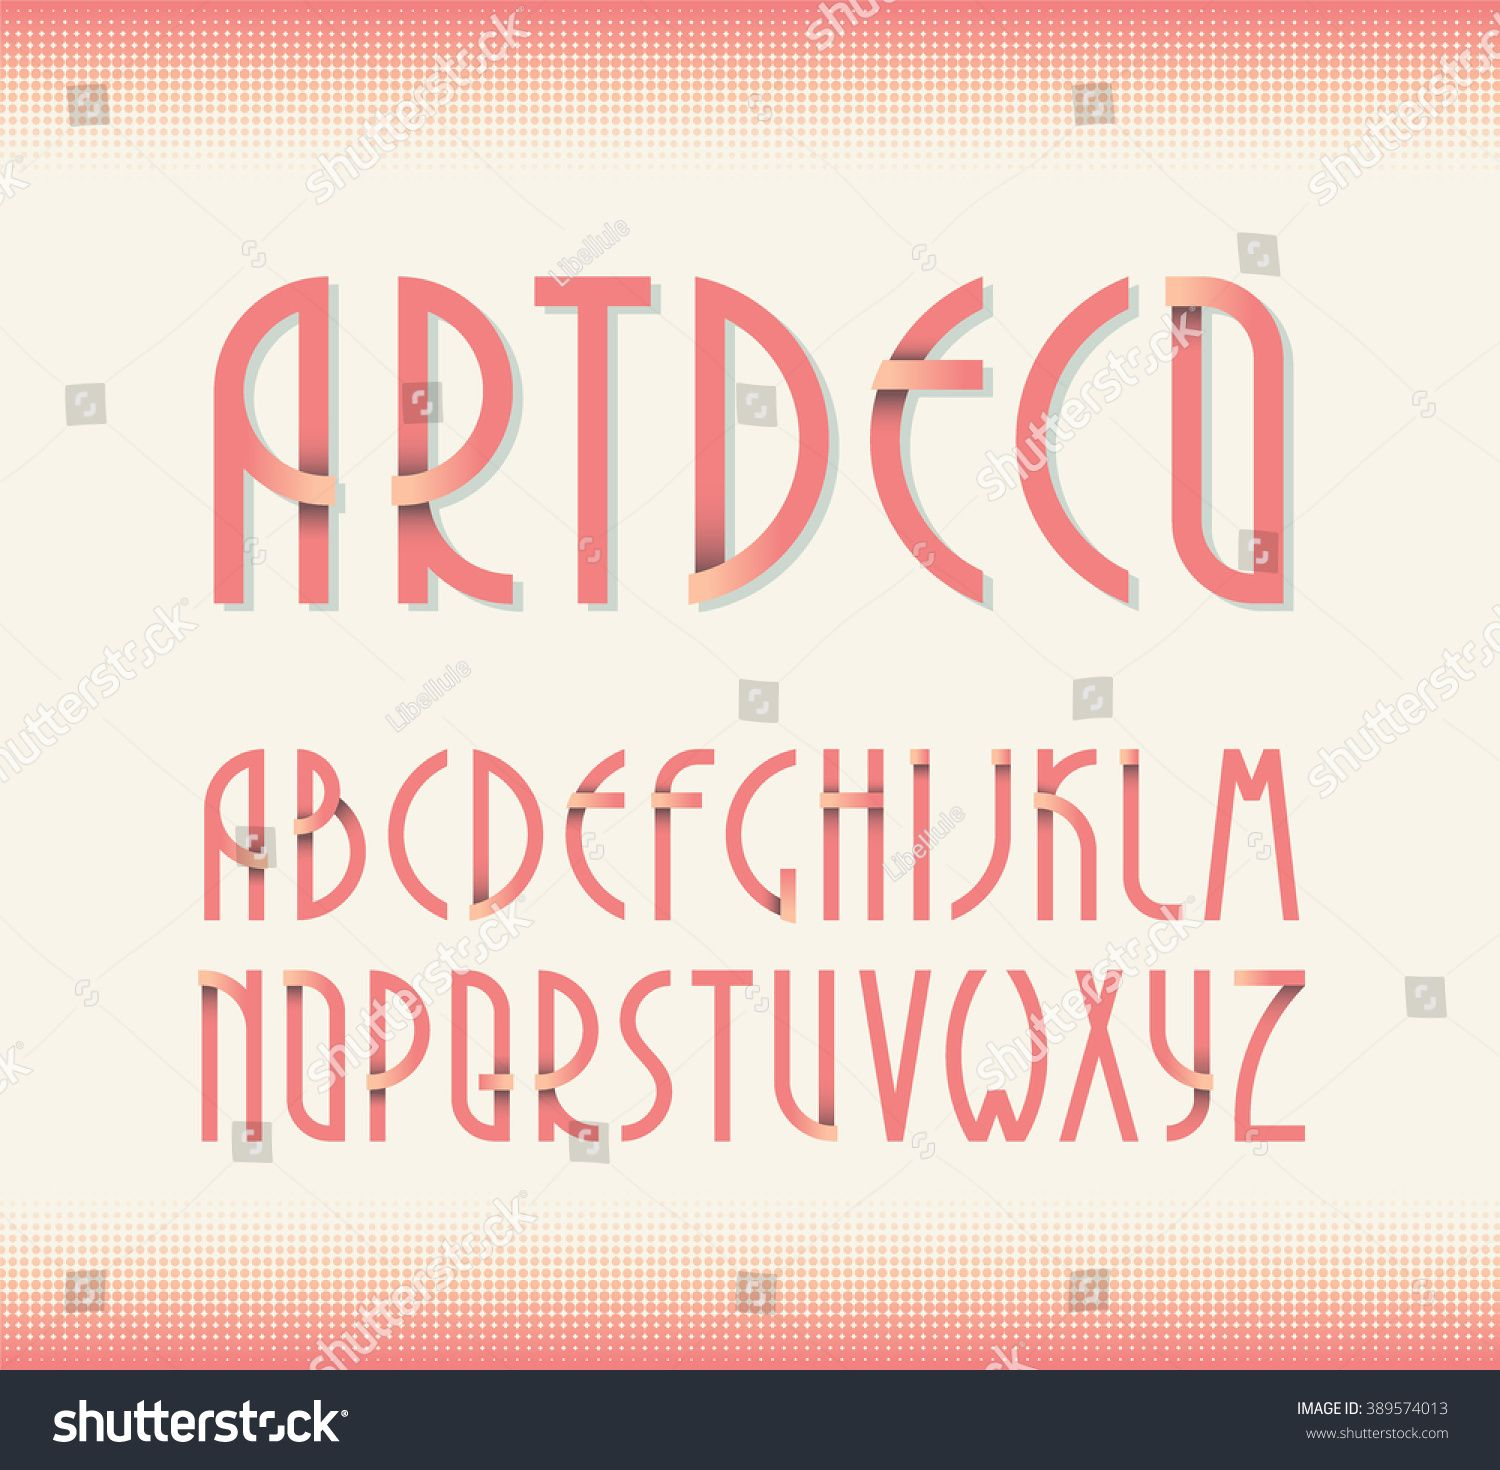 Deco Vintage Poster Typeface Font Set Of Retro Style Latin Capital Letters Ad Ad Typeface Font Poster Deco In 2020 Vintage Posters Alphabet Images Poster Fonts